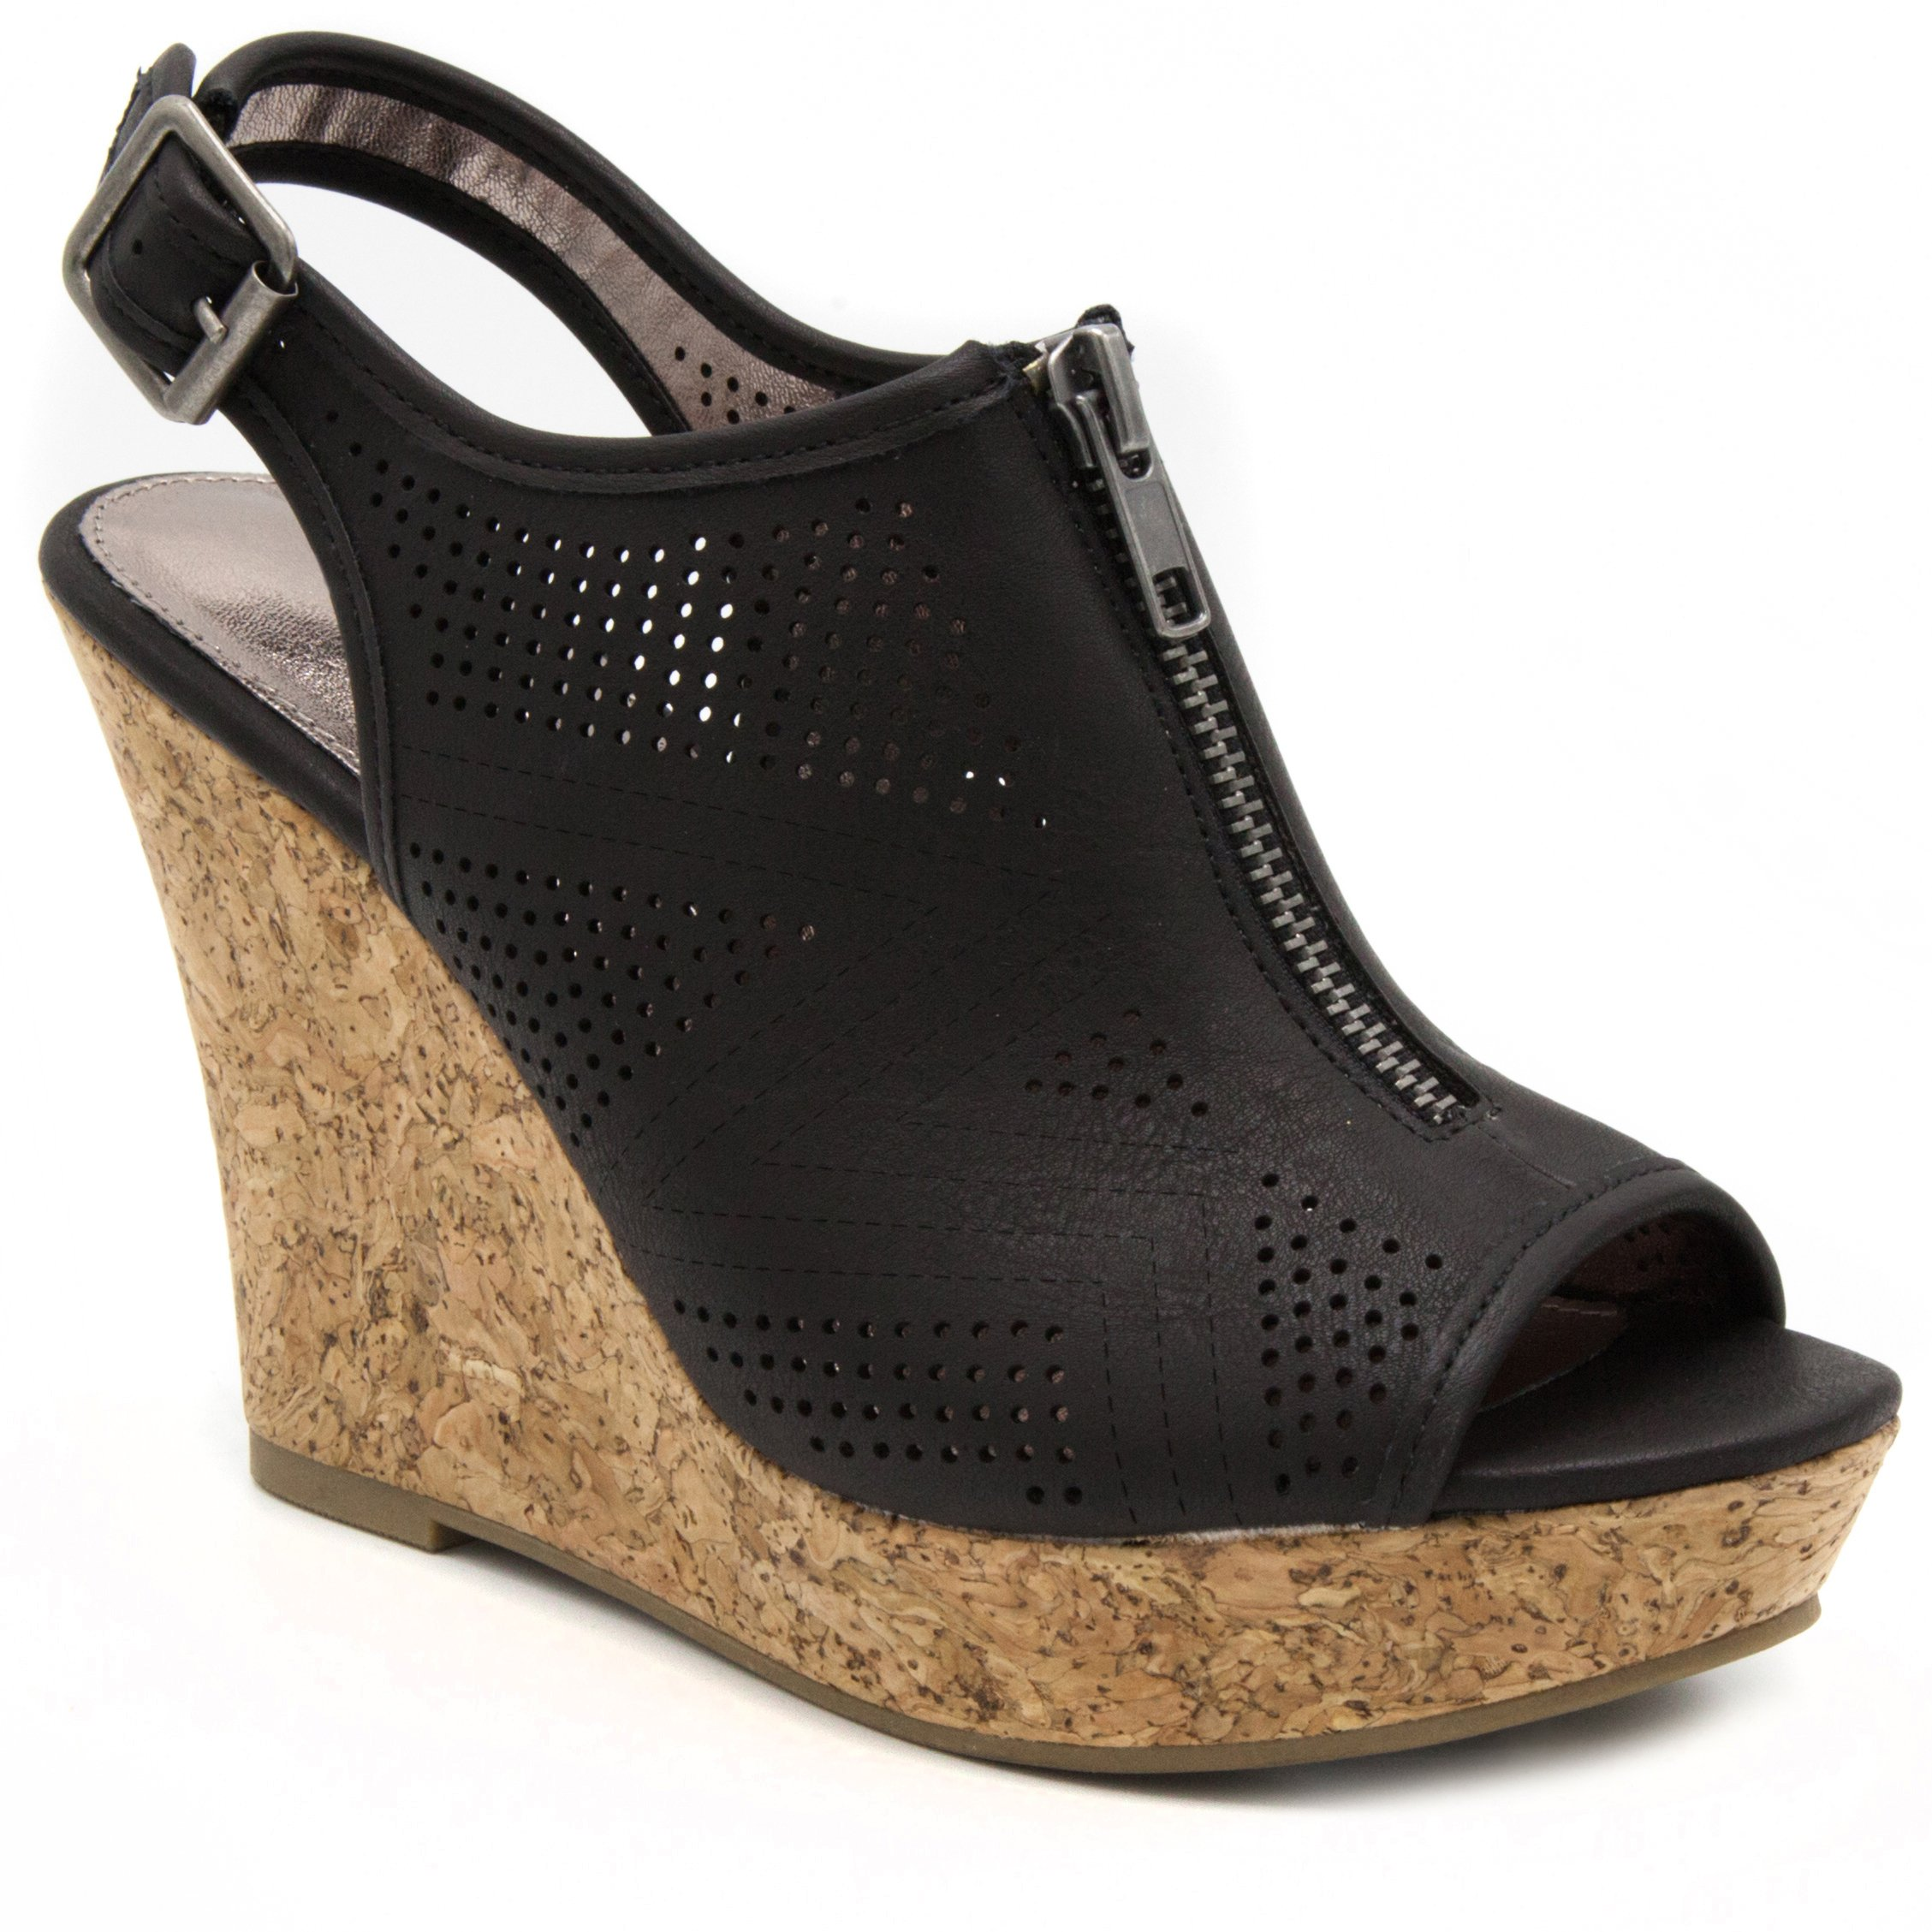 Sugar Women's Caty Fashion Slingback Peep Toe Cork Wedge Sandals with Perferated Design Zipper and Buckle 11 Black